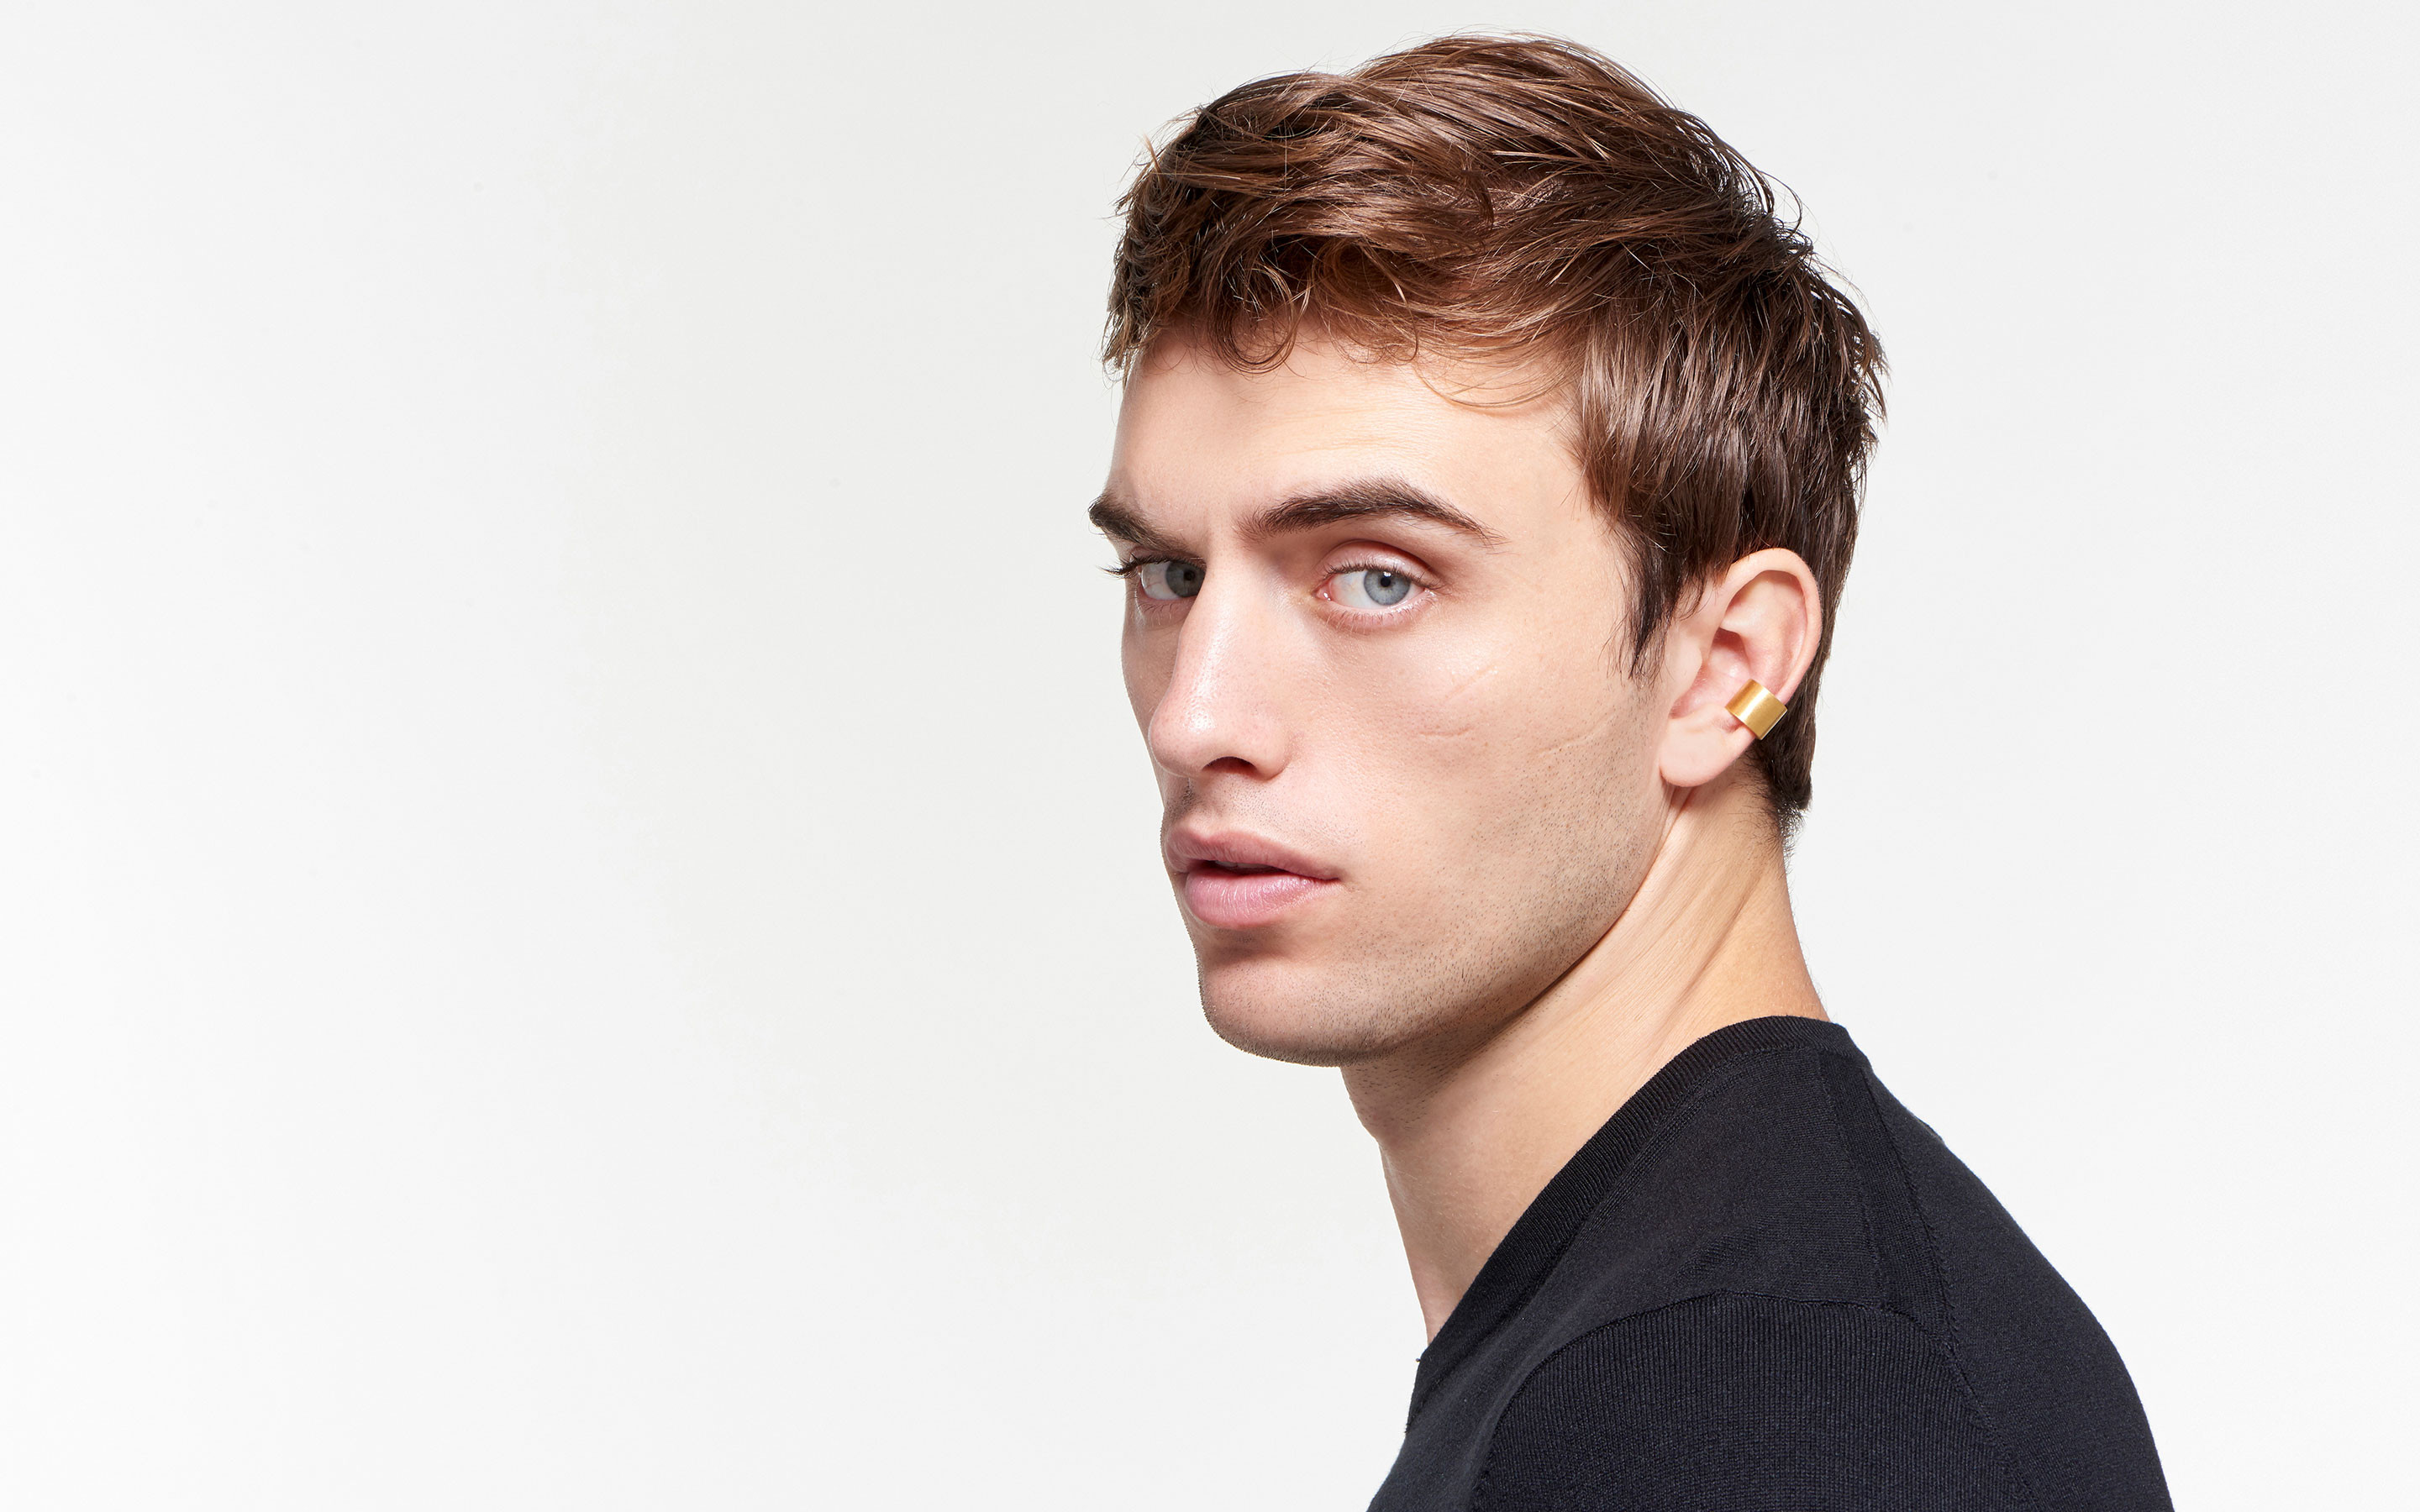 22 karat gold ear cuff in crescent shape on attractive male model staring stoically